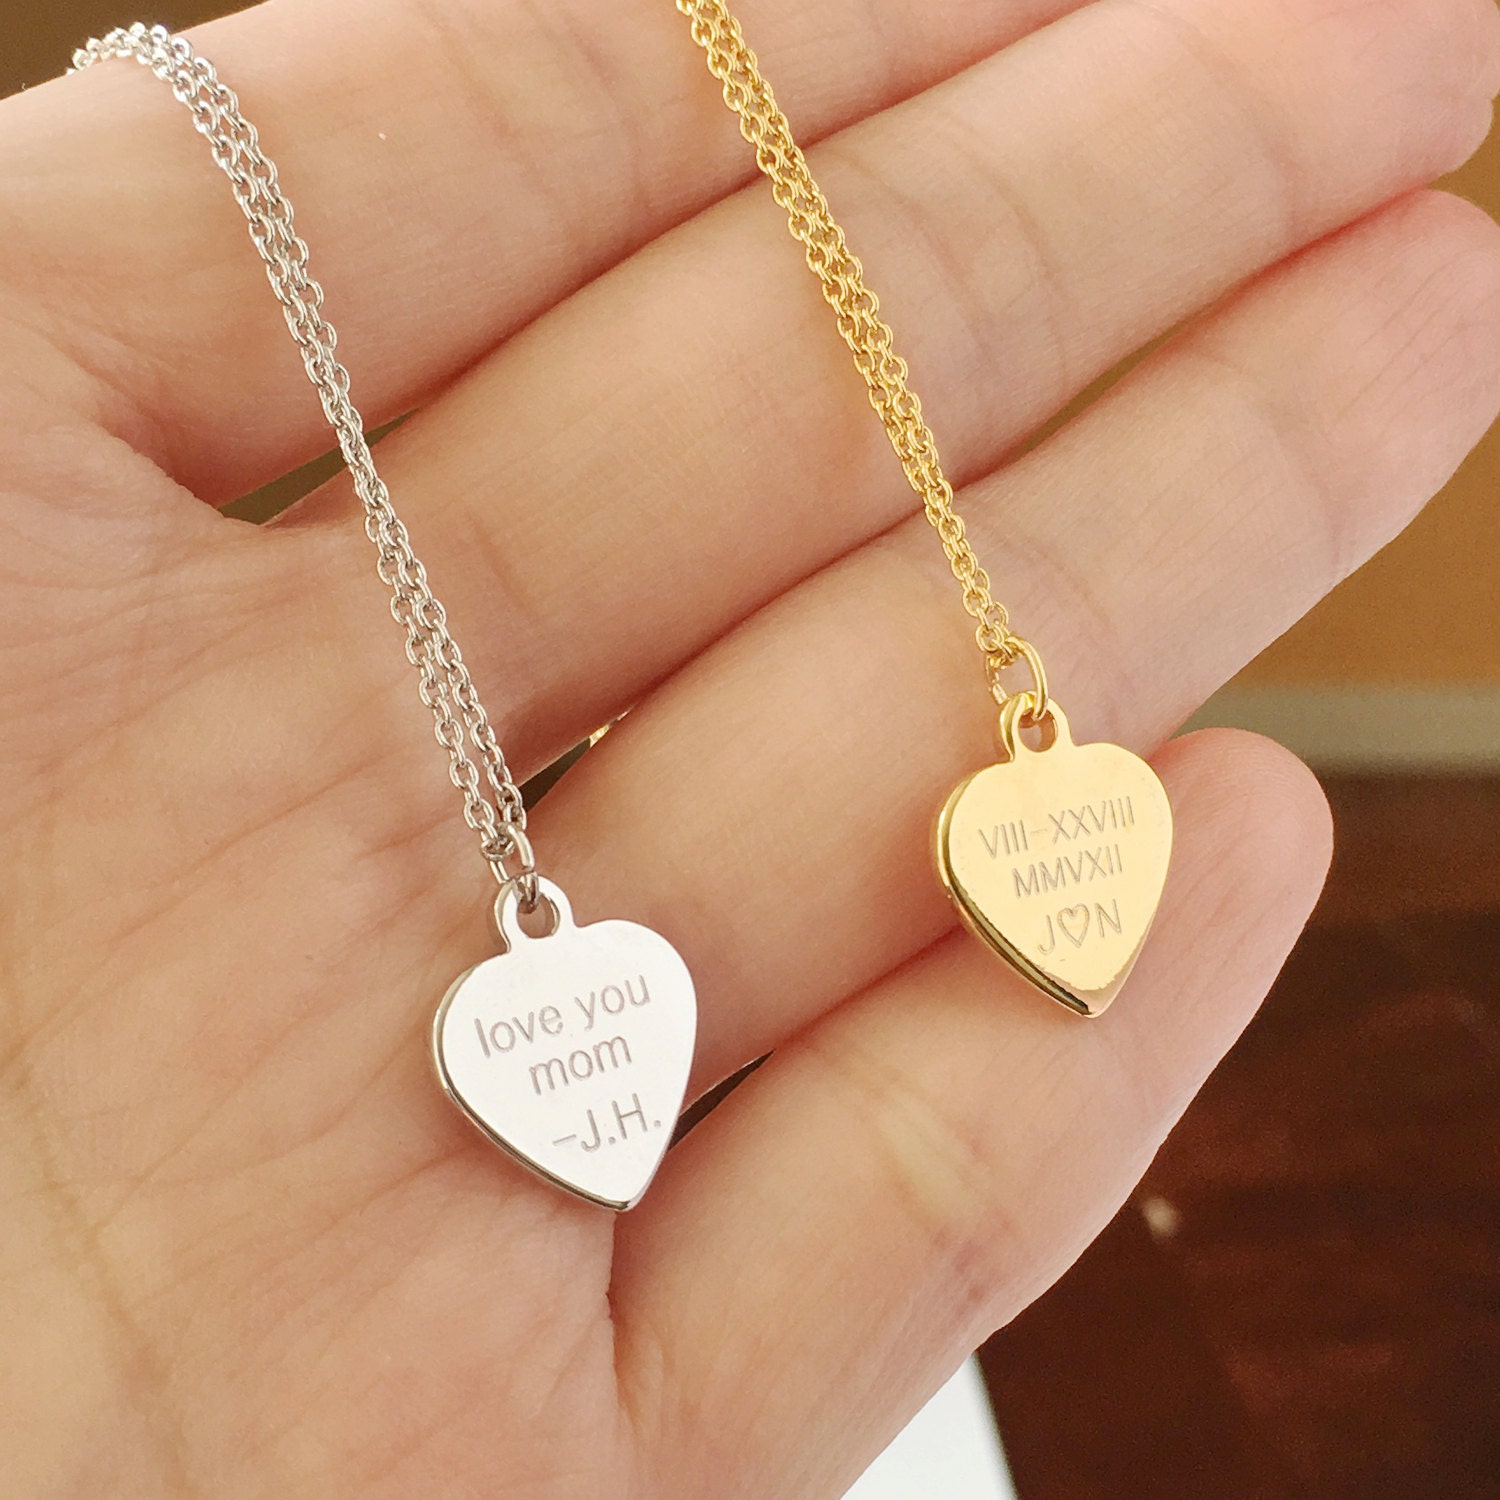 Custom Engraved Necklace Engraved Heart Necklace Roman